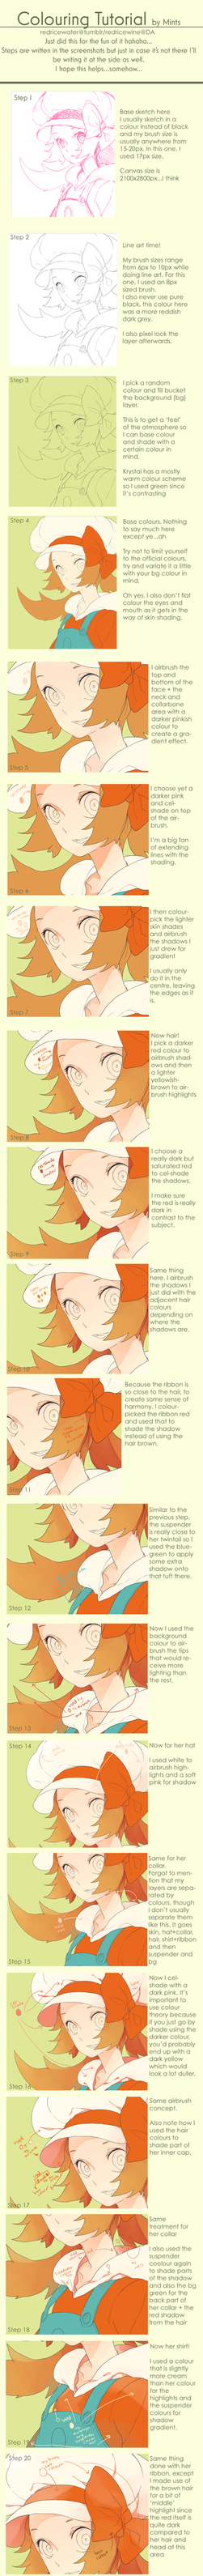 Colouring Tutorial Part 1 by redricewine